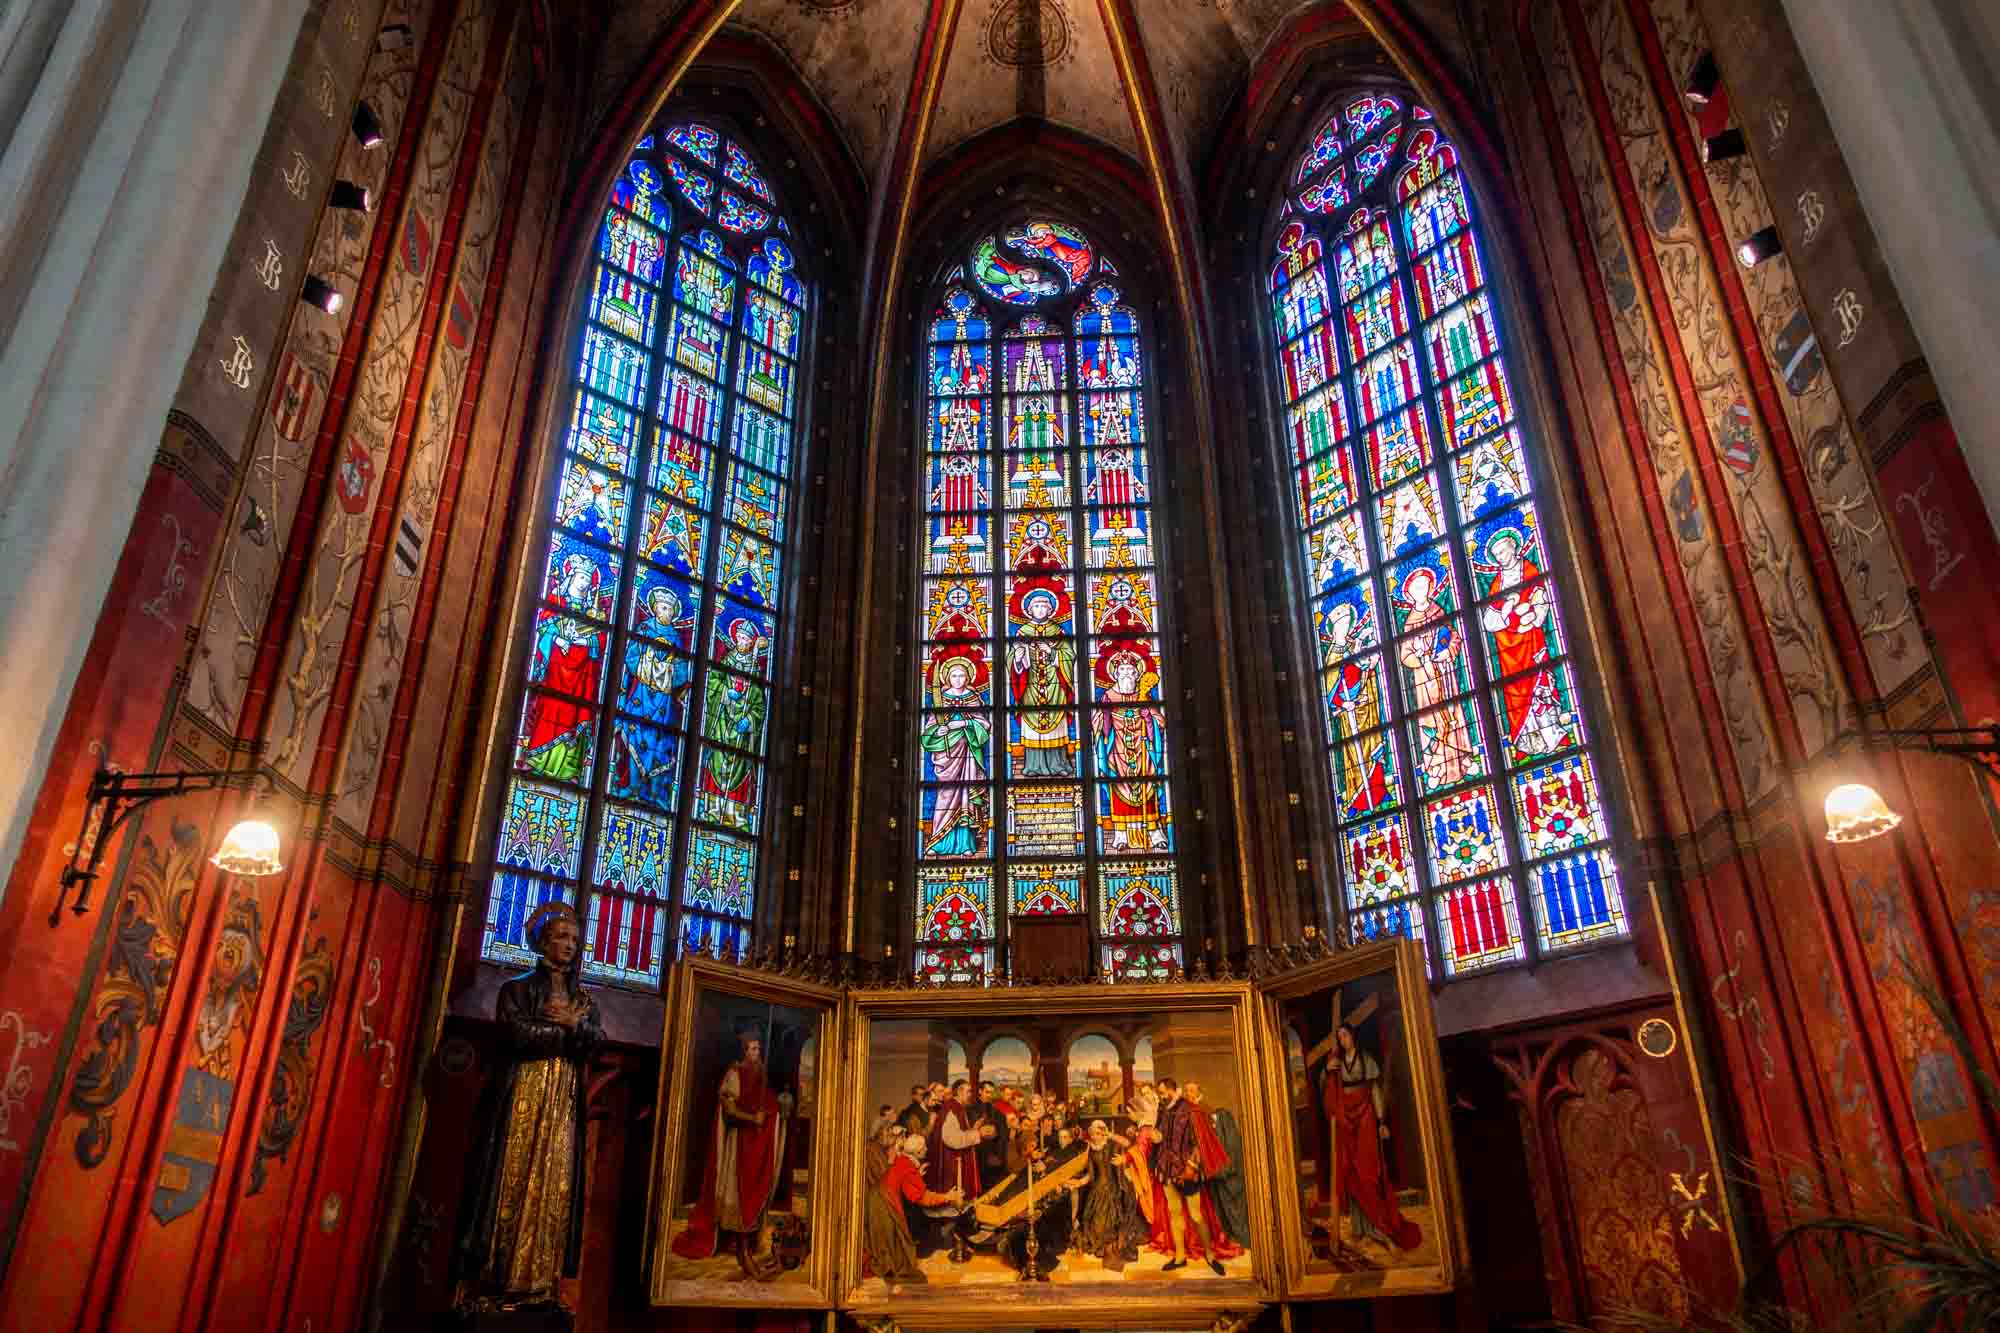 Stained glass and art in the Cathedral of Our Lady in Antwerp